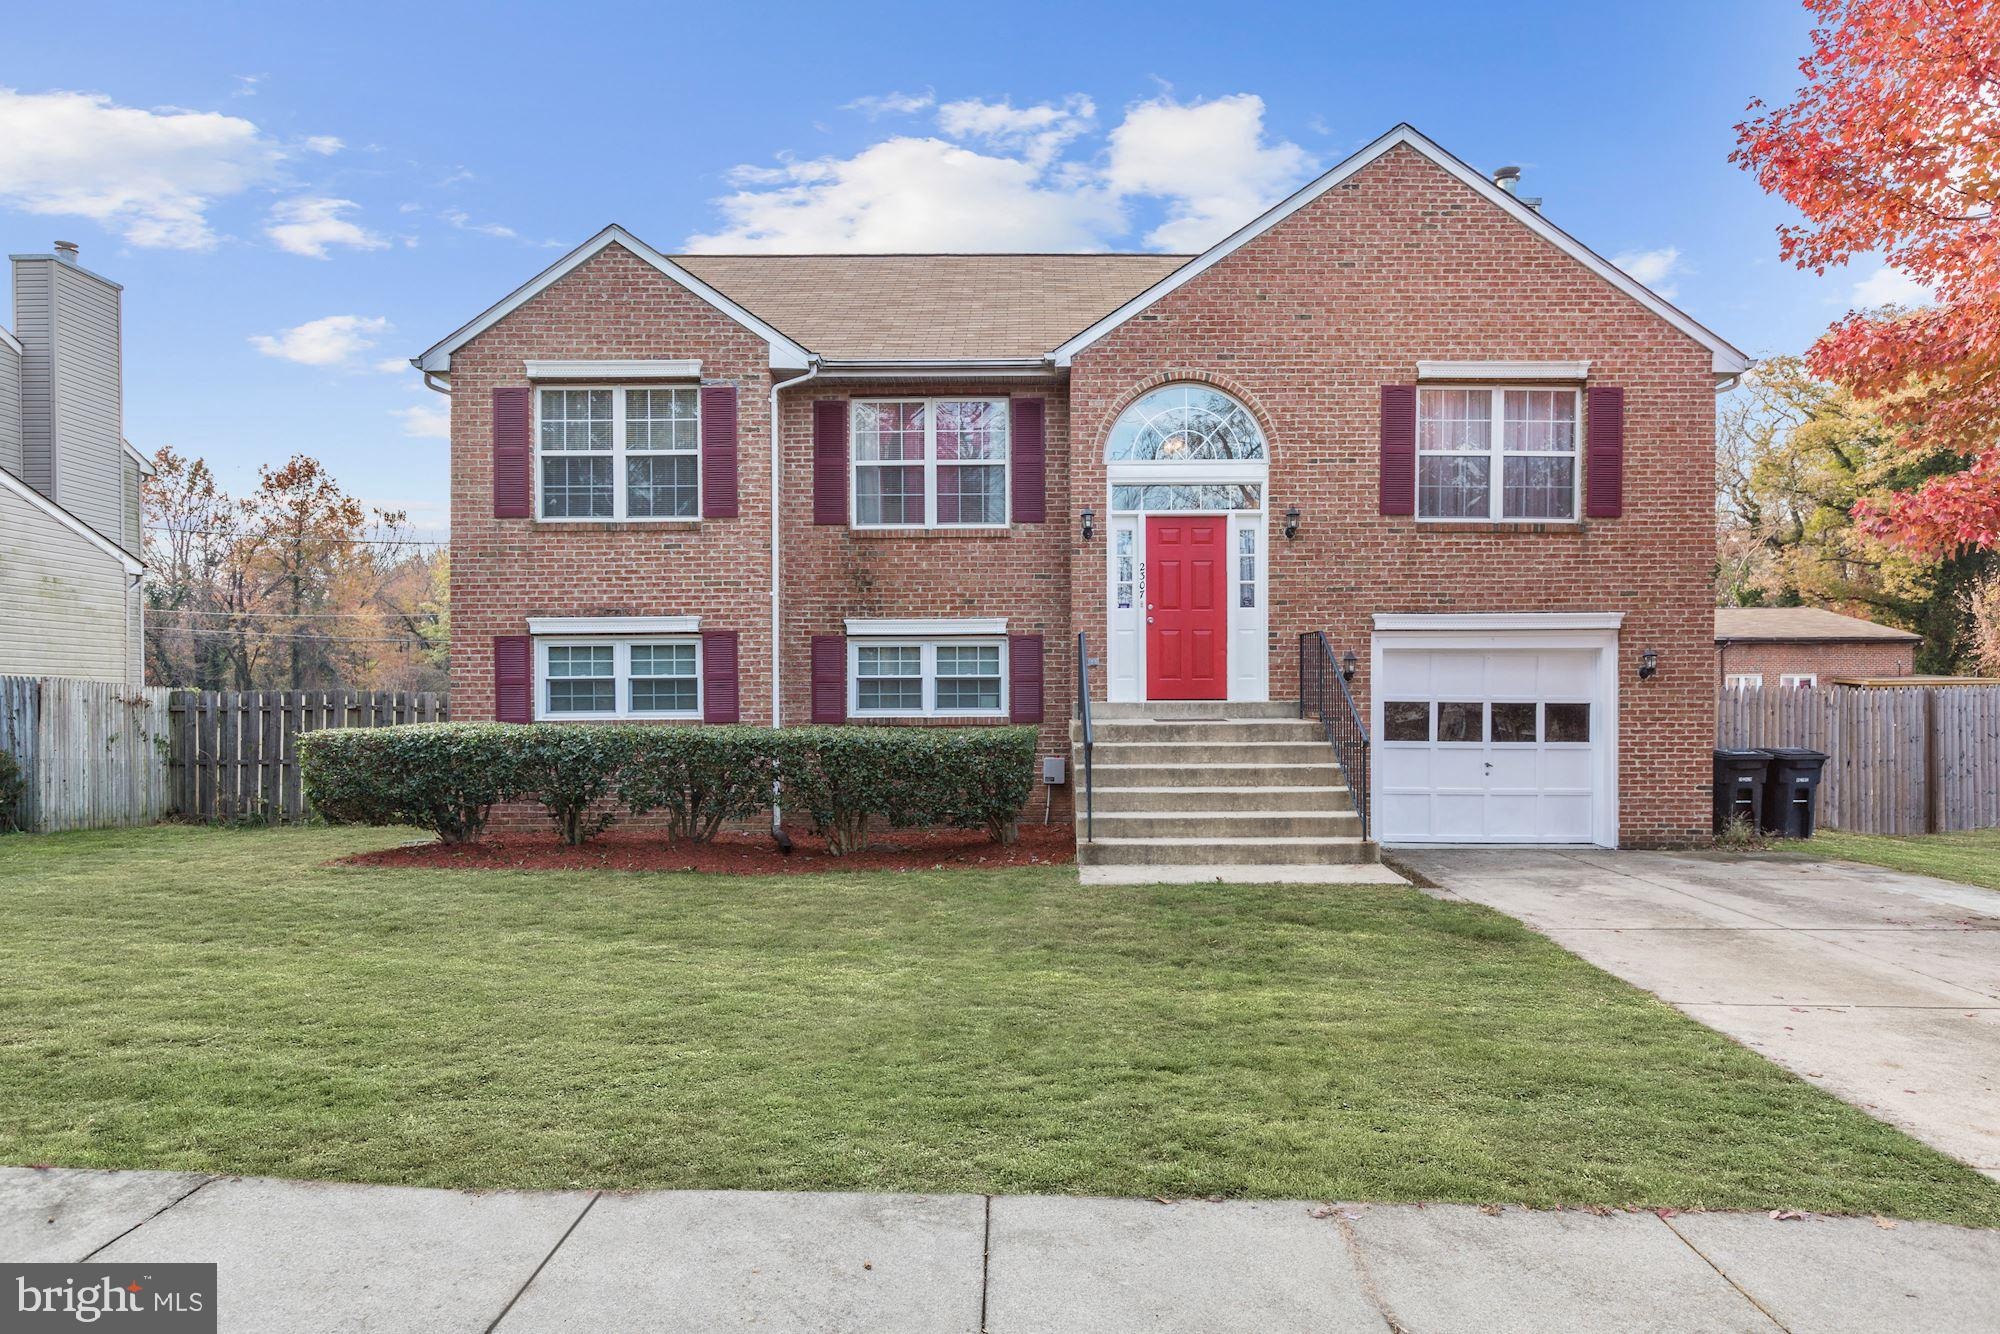 2307 WHITEHALL St, Suitland, MD, 20746